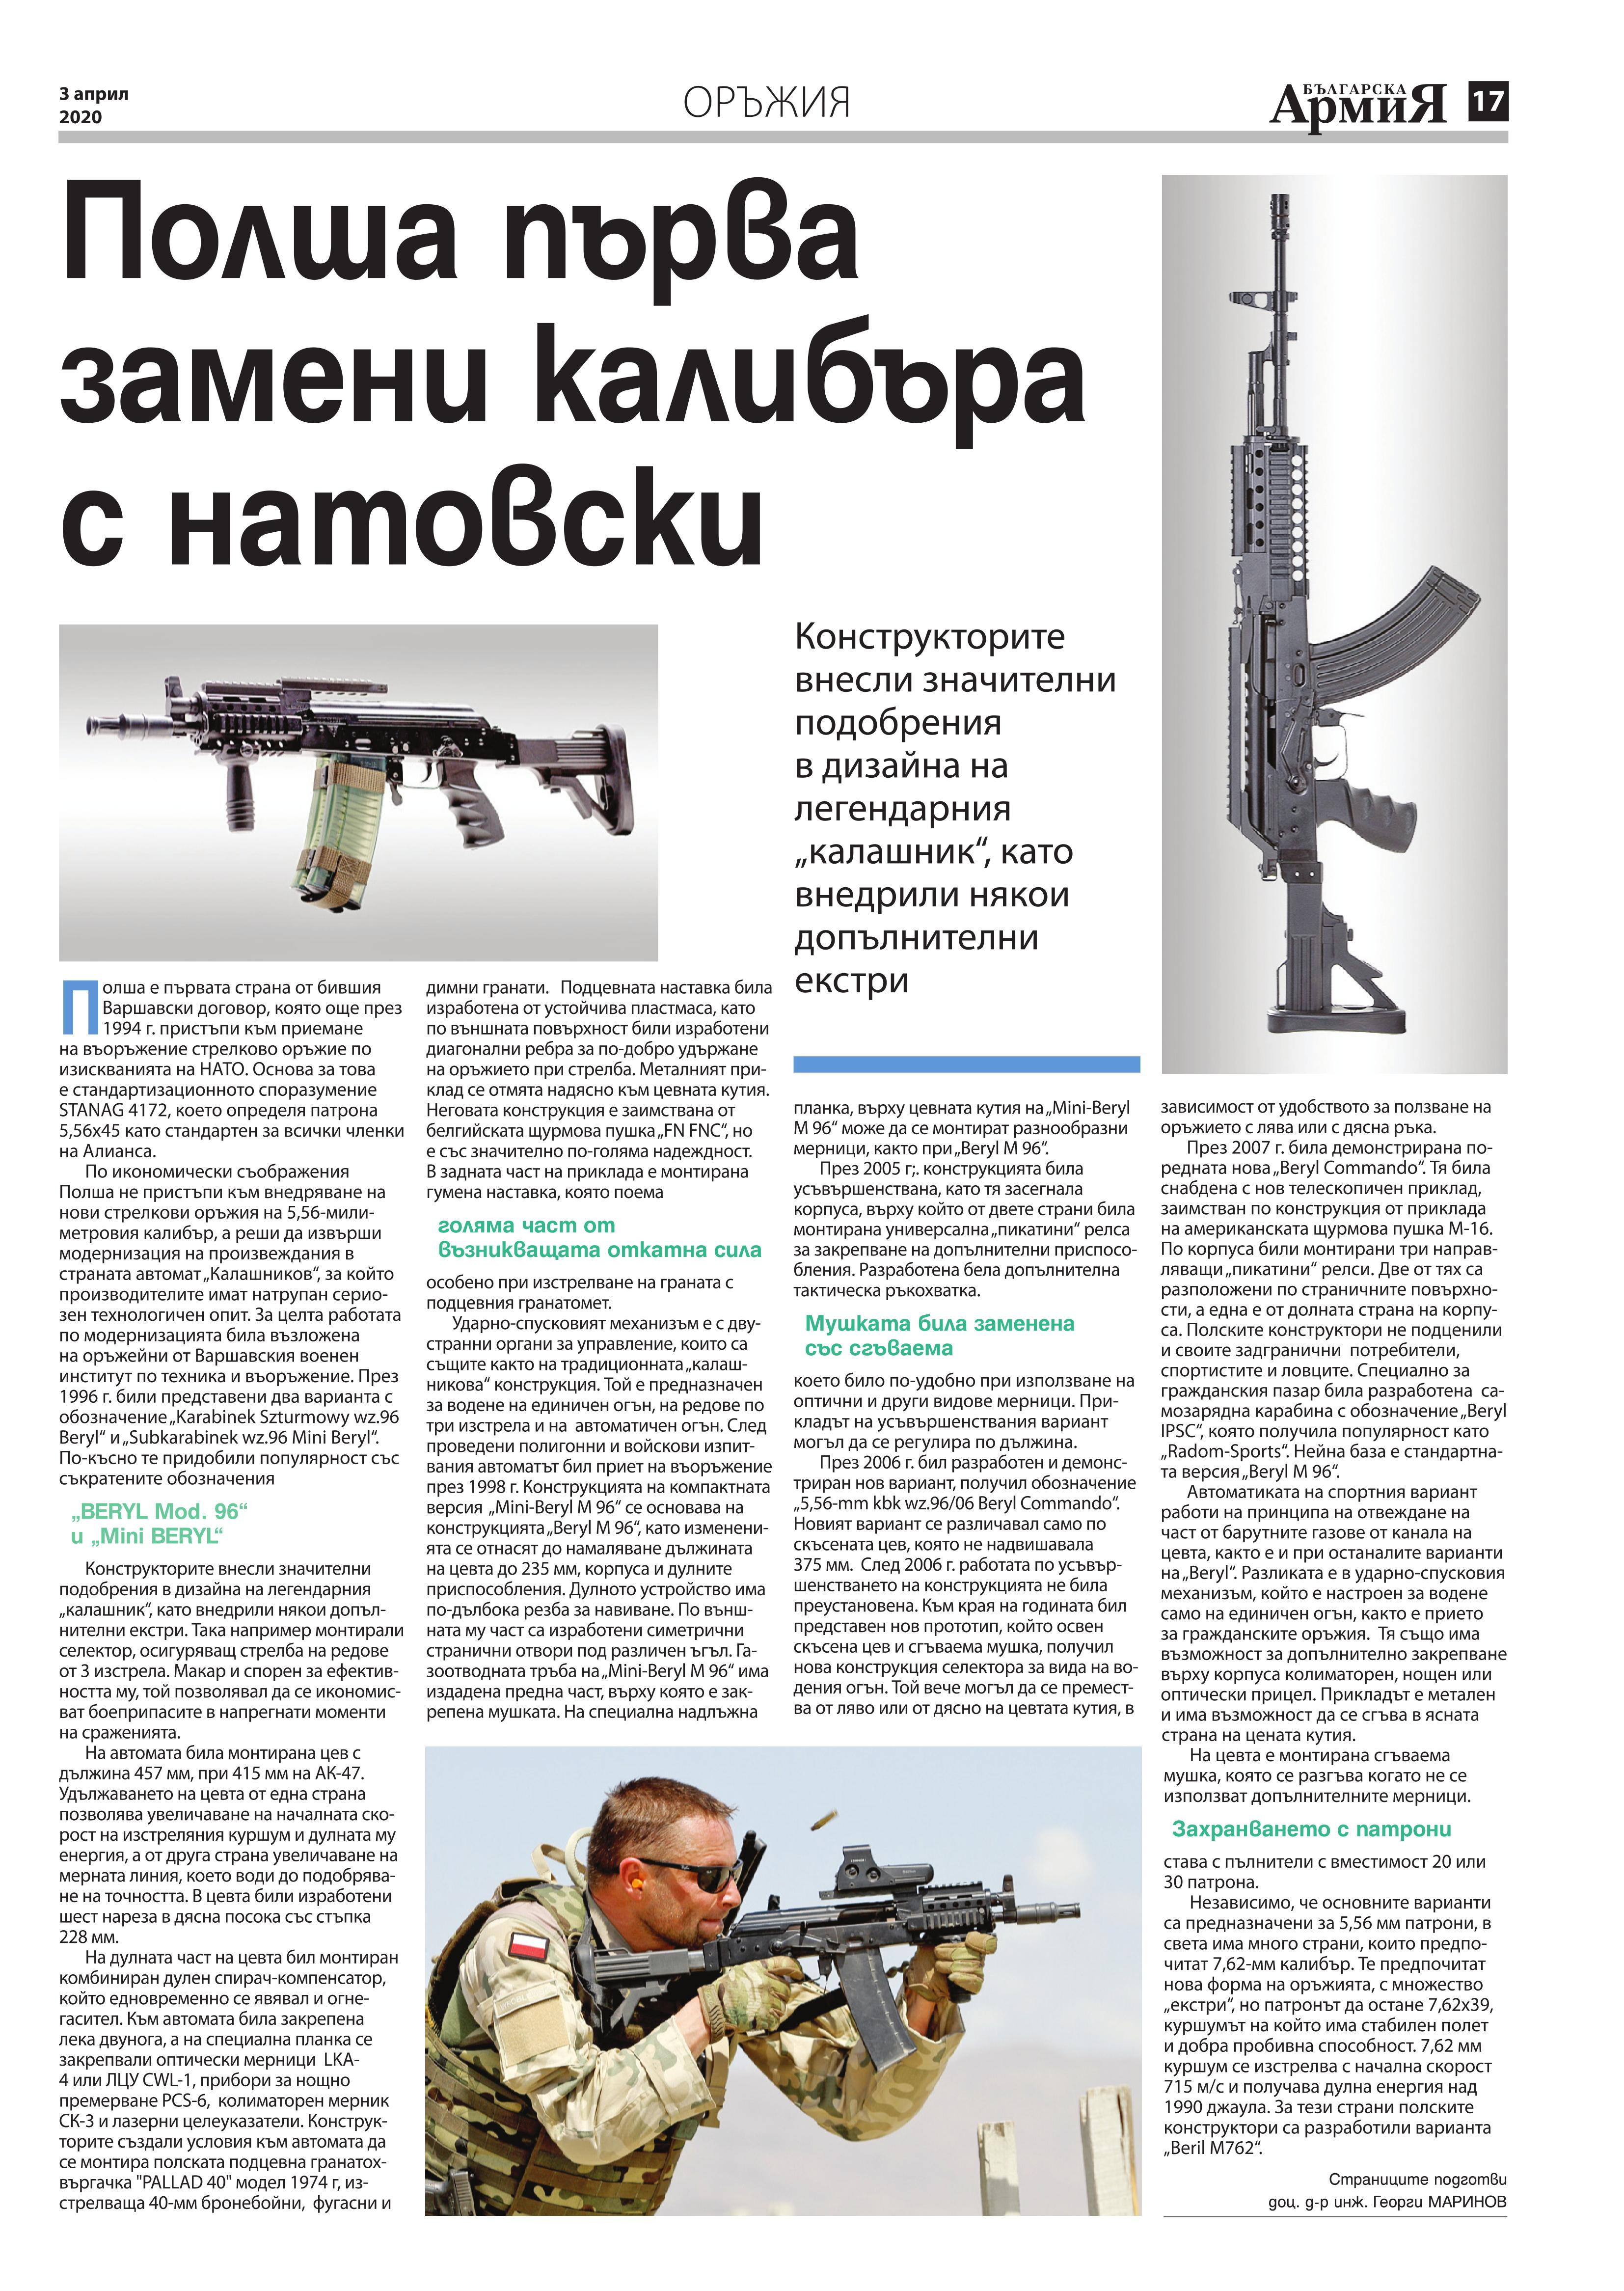 https://armymedia.bg/wp-content/uploads/2015/06/17.page1_-133.jpg